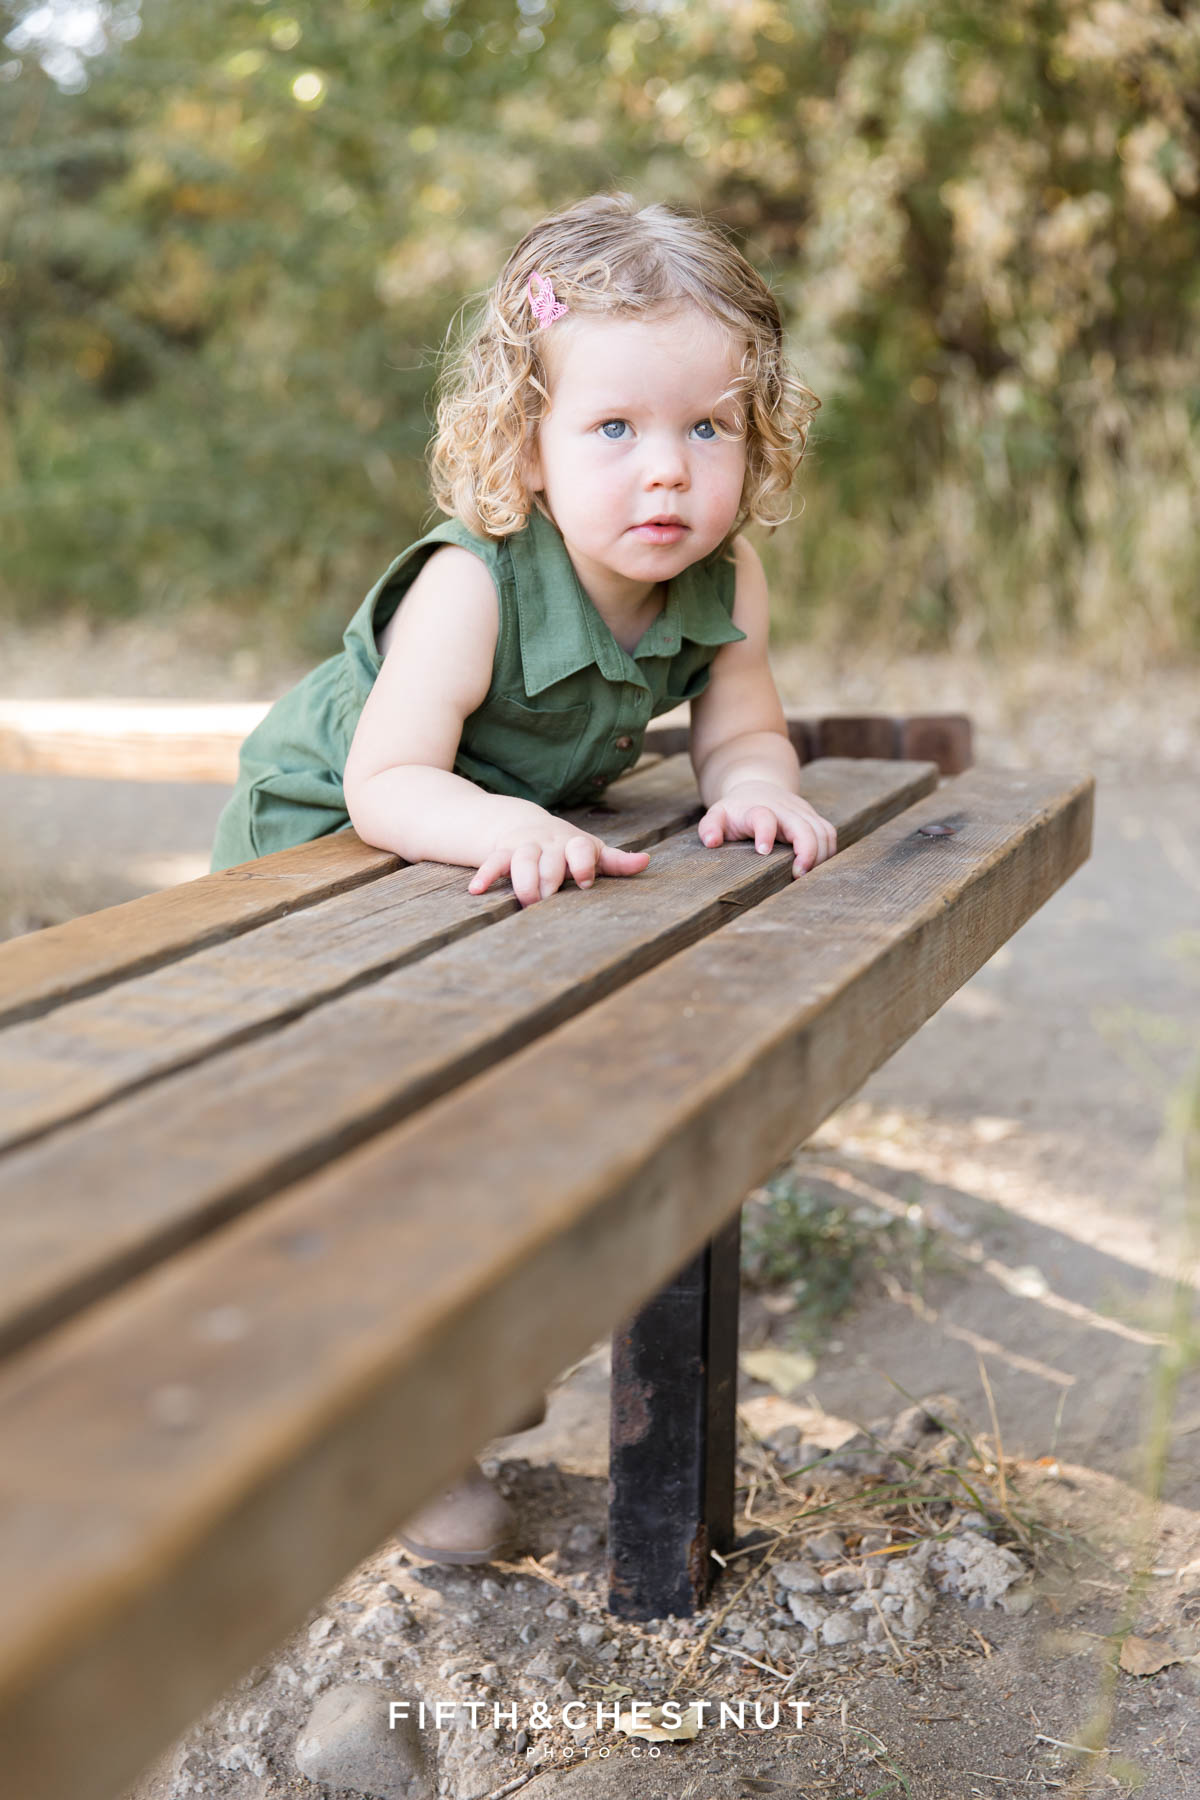 Toddler girl climbing on a bench wearing earthtone colored dress.